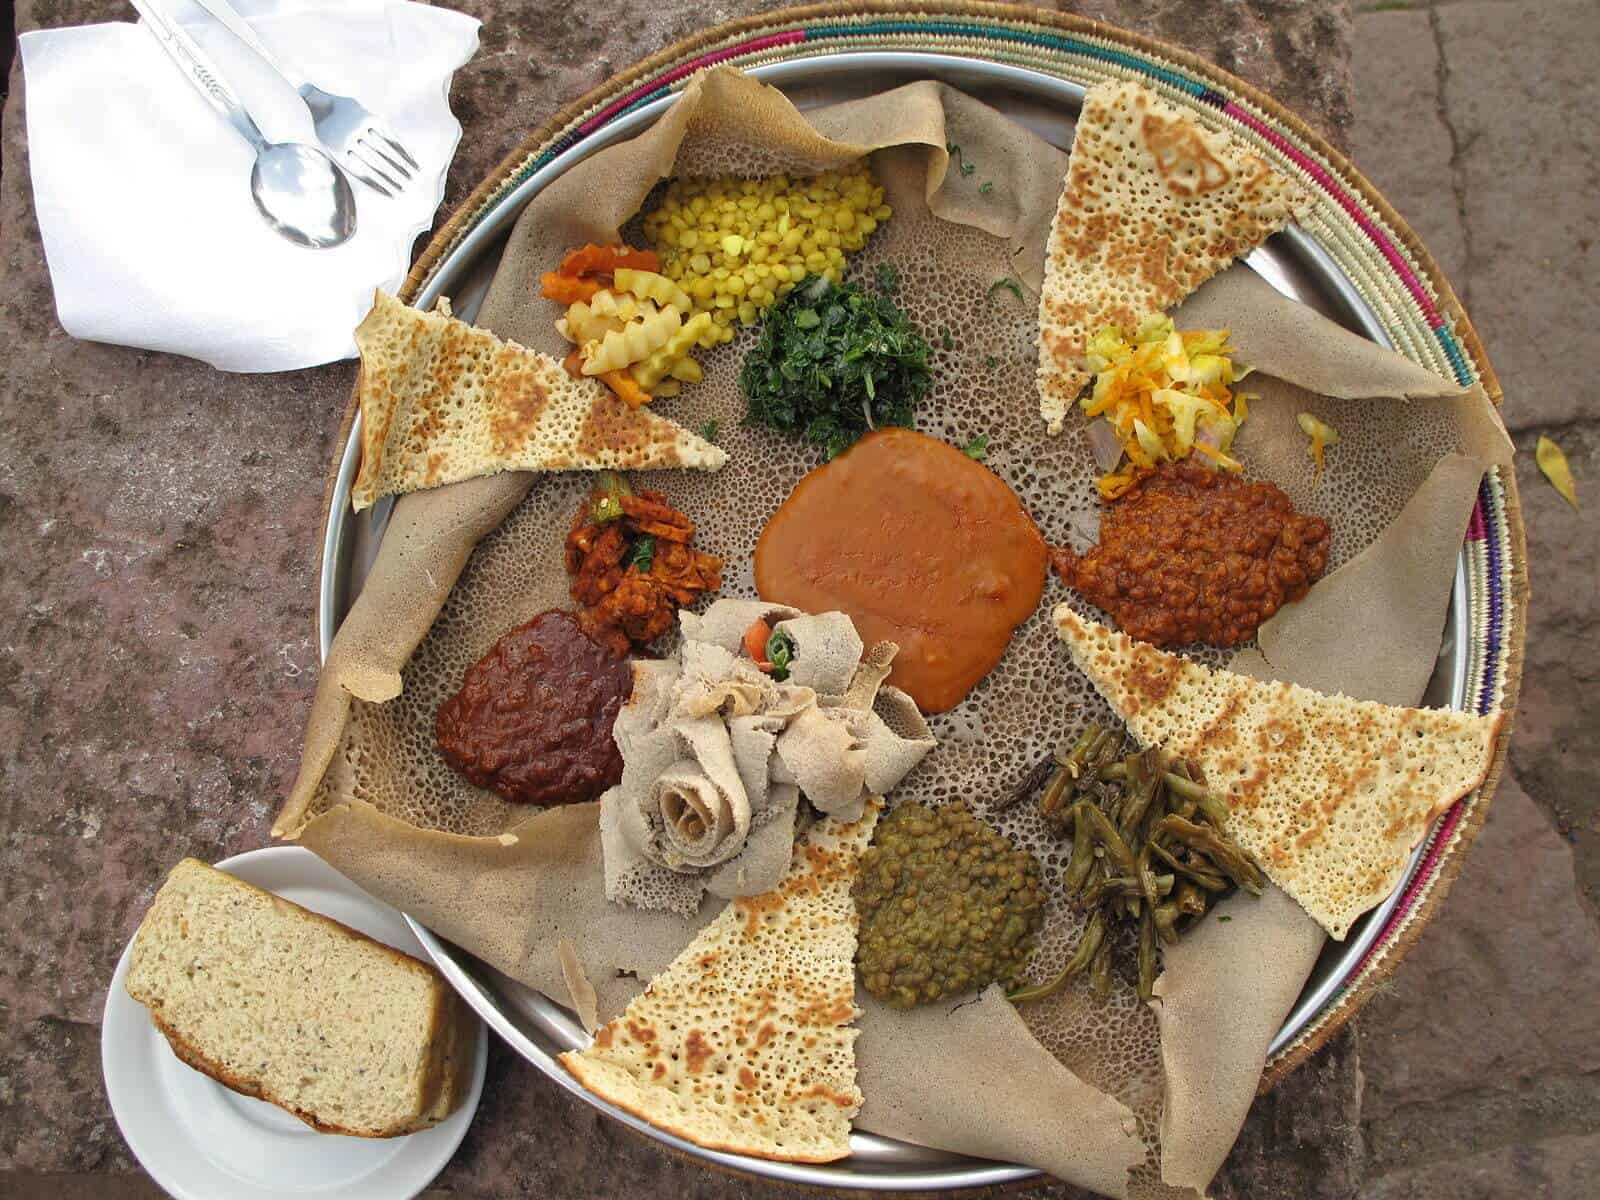 Authentic injera ethiopian flatbread the daring gourmet for Authentic ethiopian cuisine